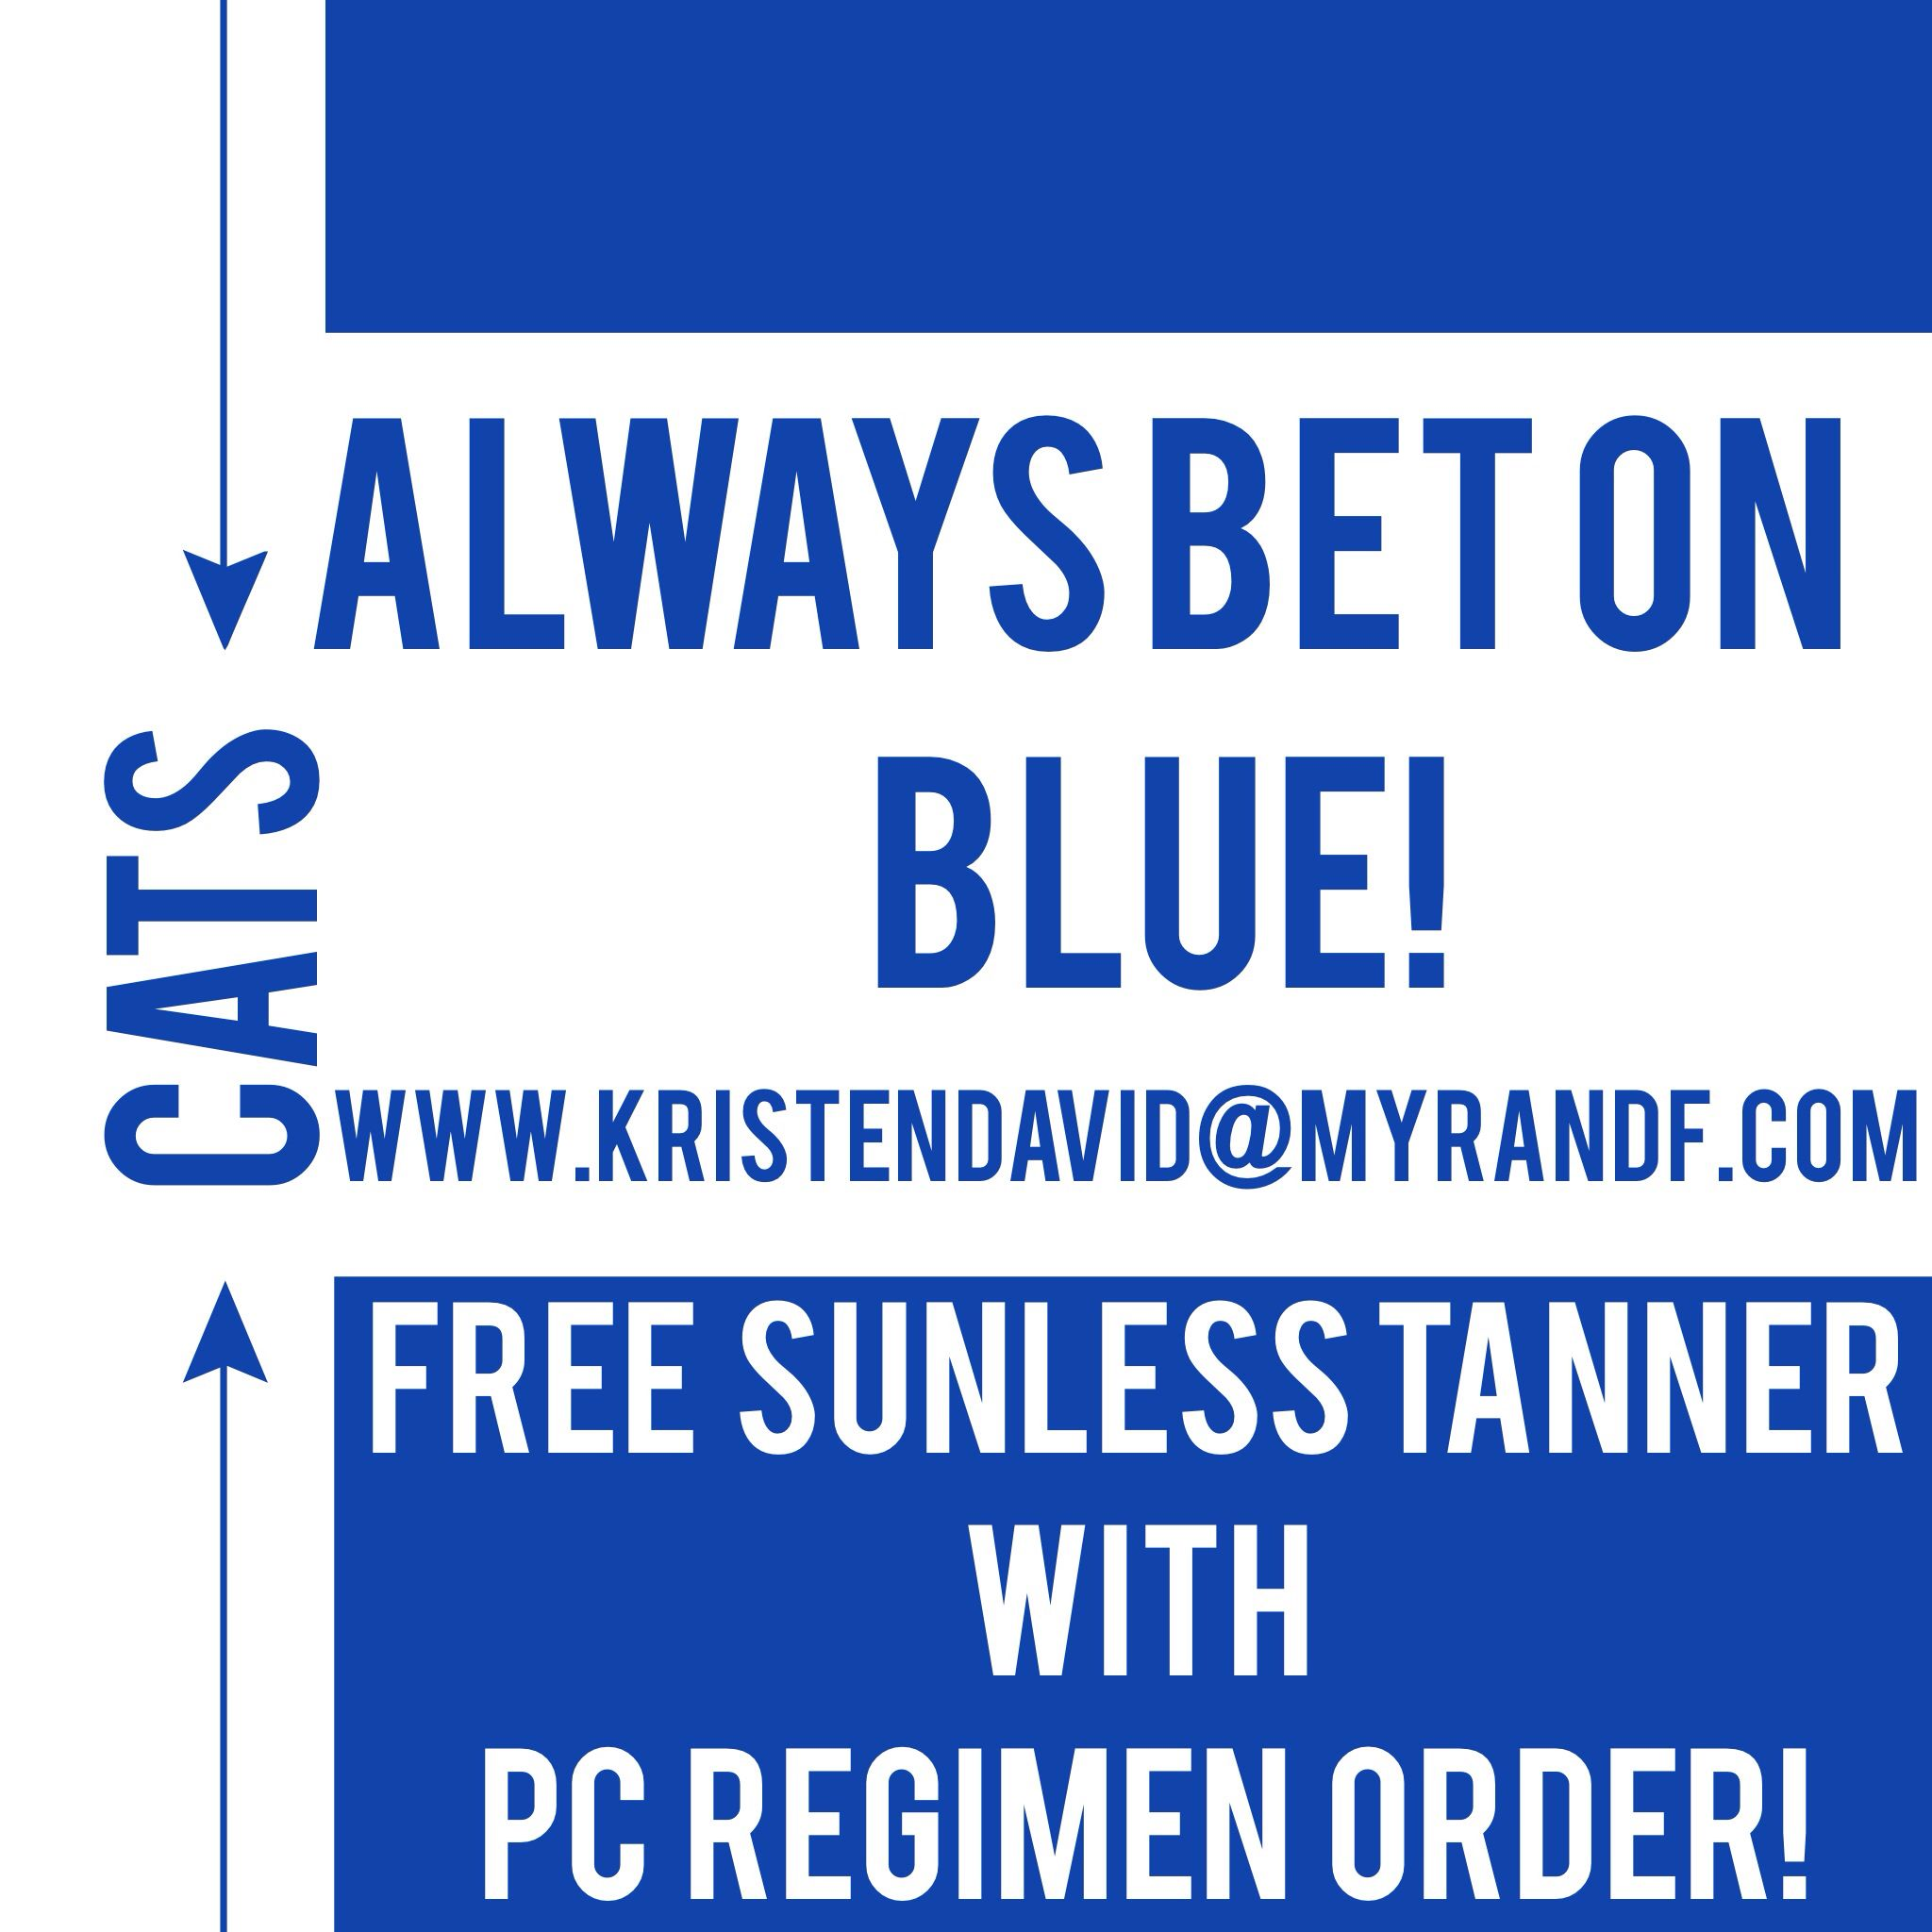 GO CATS!! Hurry to grab some great skin care and free sunless tanner!   www.kristendavid.myrandf.com